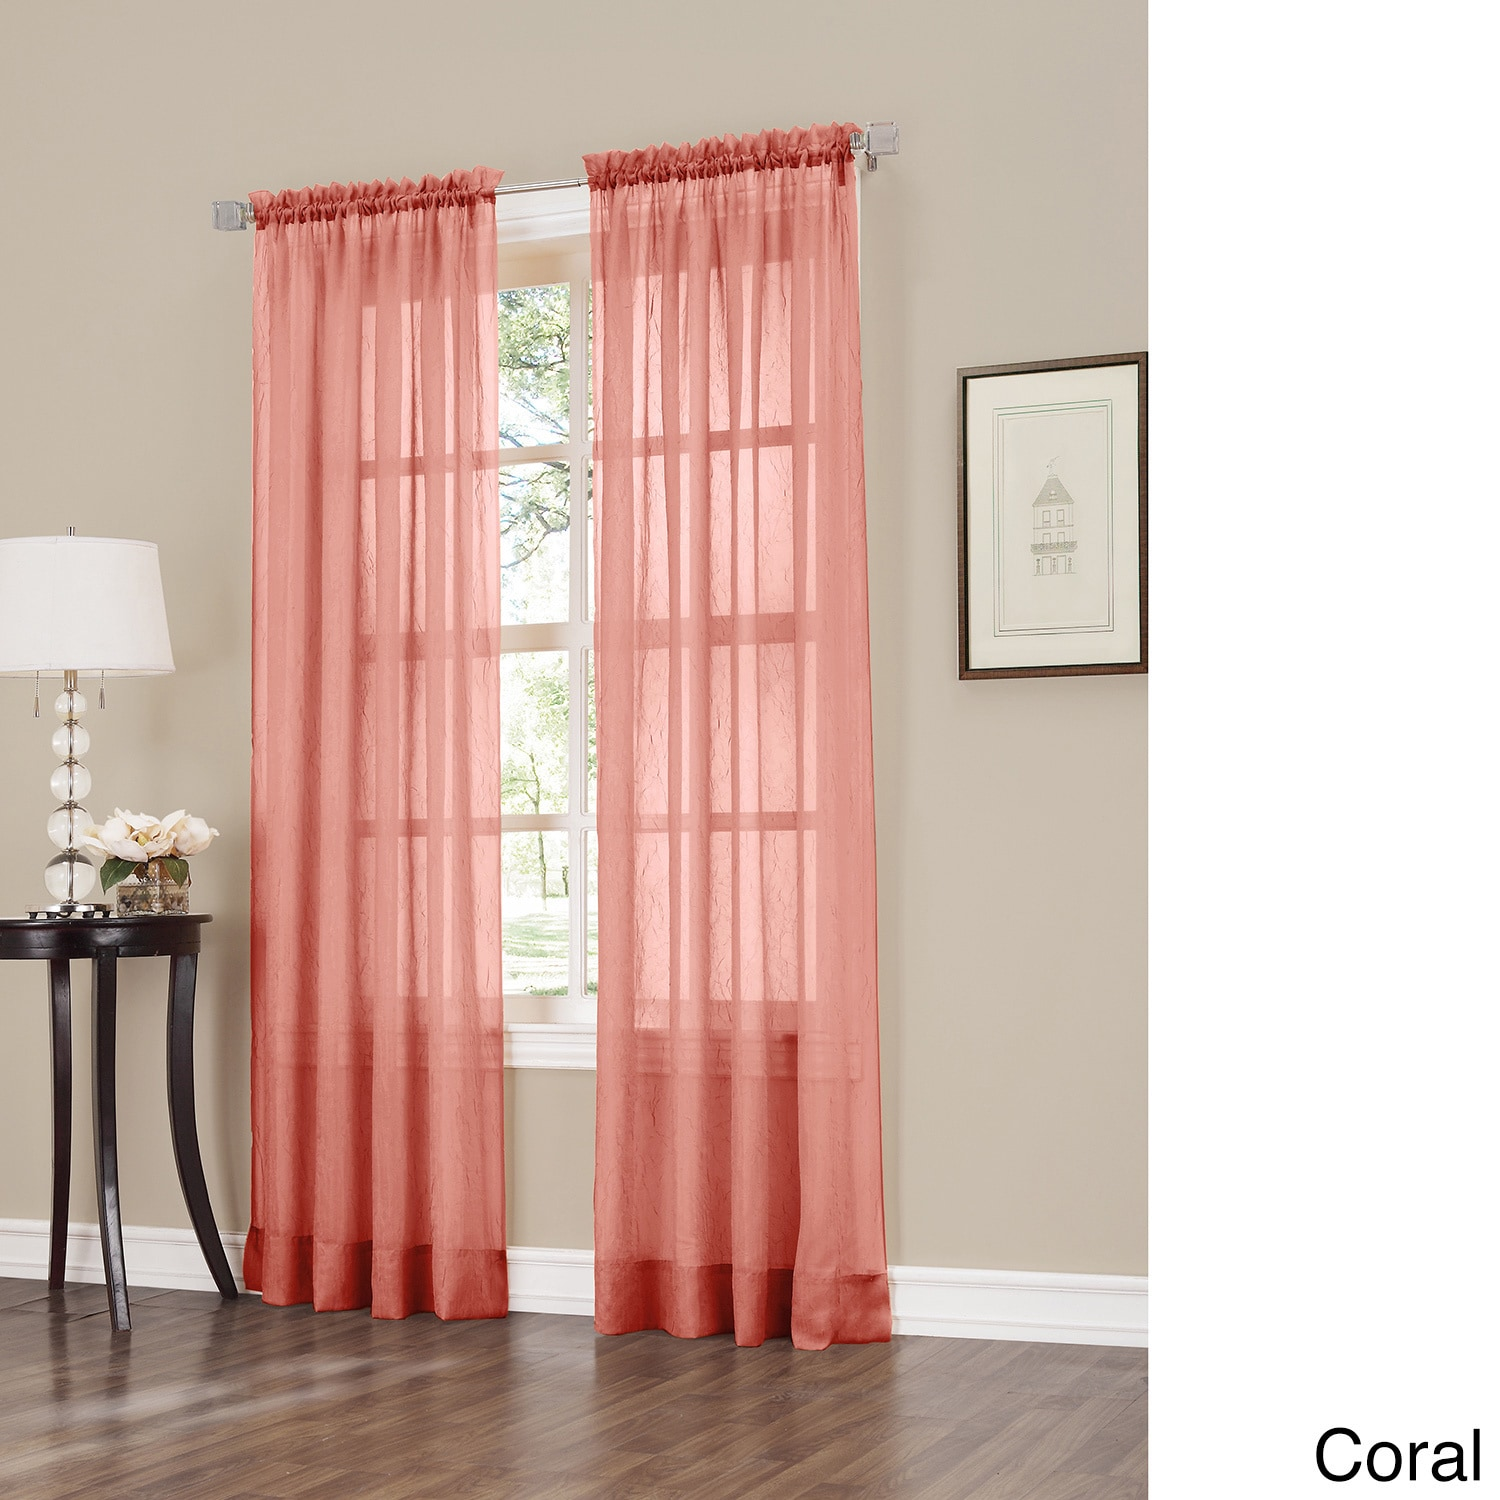 918 Erica Sheer Crushed Voile Single Curtain Panel (2 Options Available)